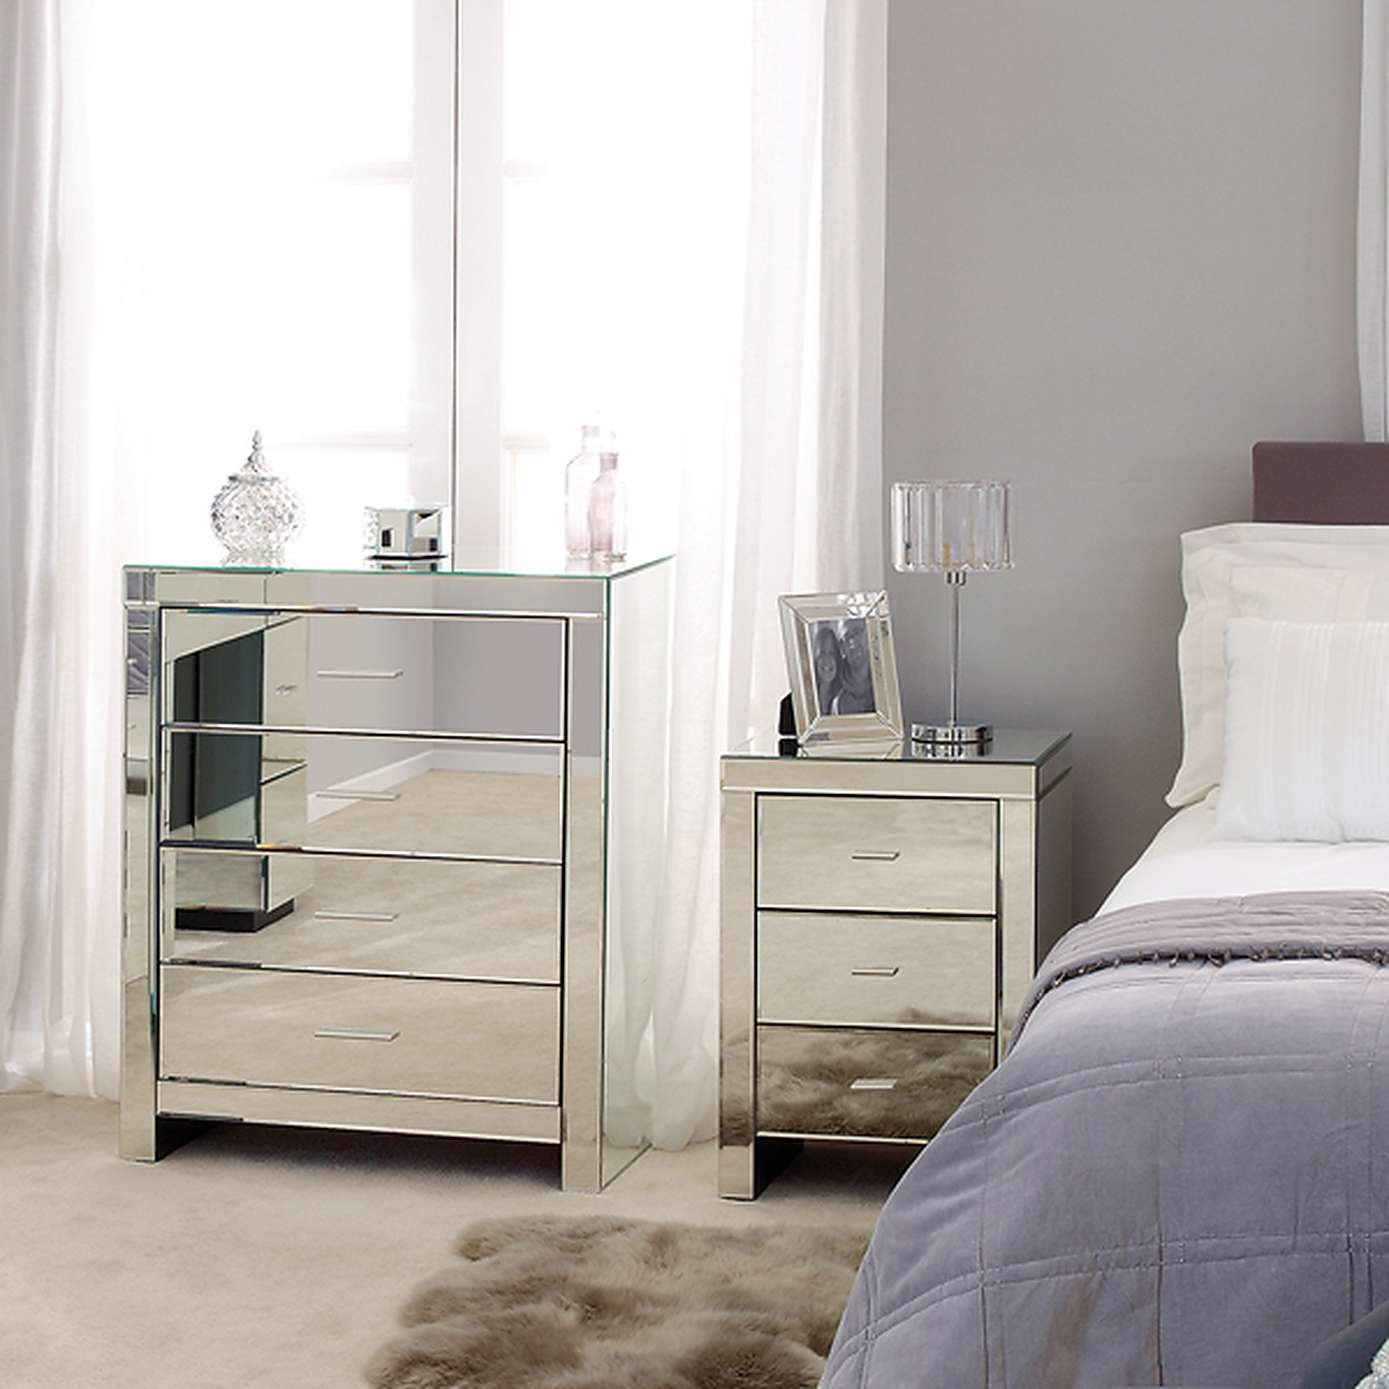 Best Mirrored Bedroom Furniture Sale — Gretabean Mirror With Pictures